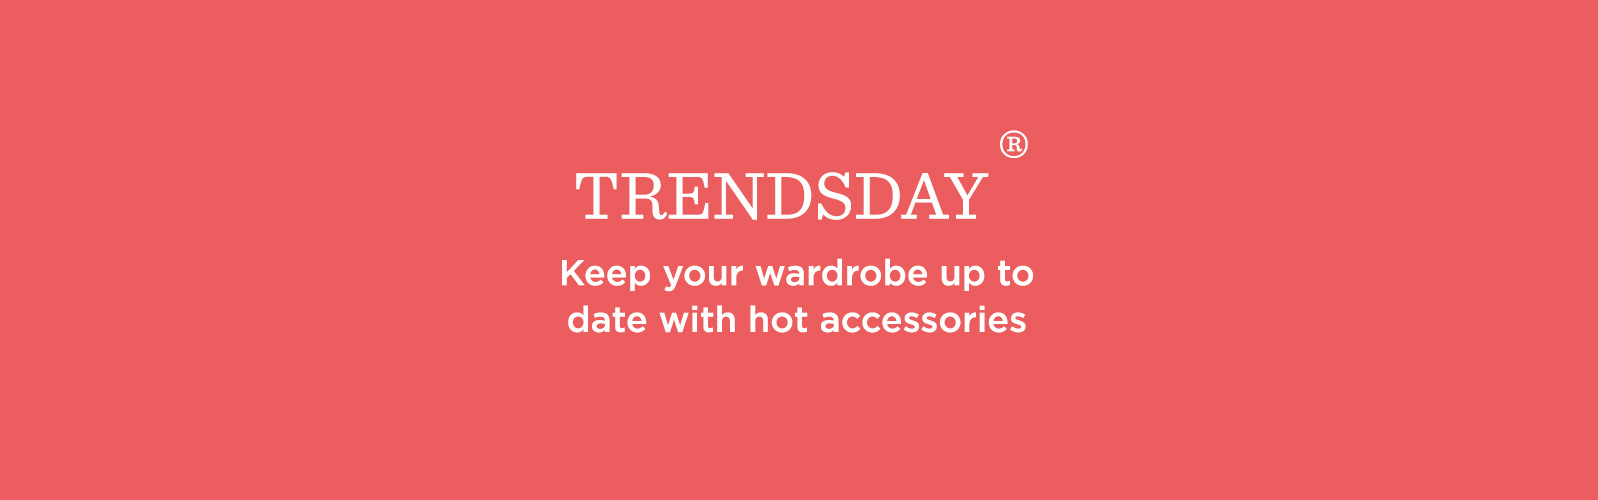 TRENDSDAY® Keep your wardrobe up to date with hot accessories